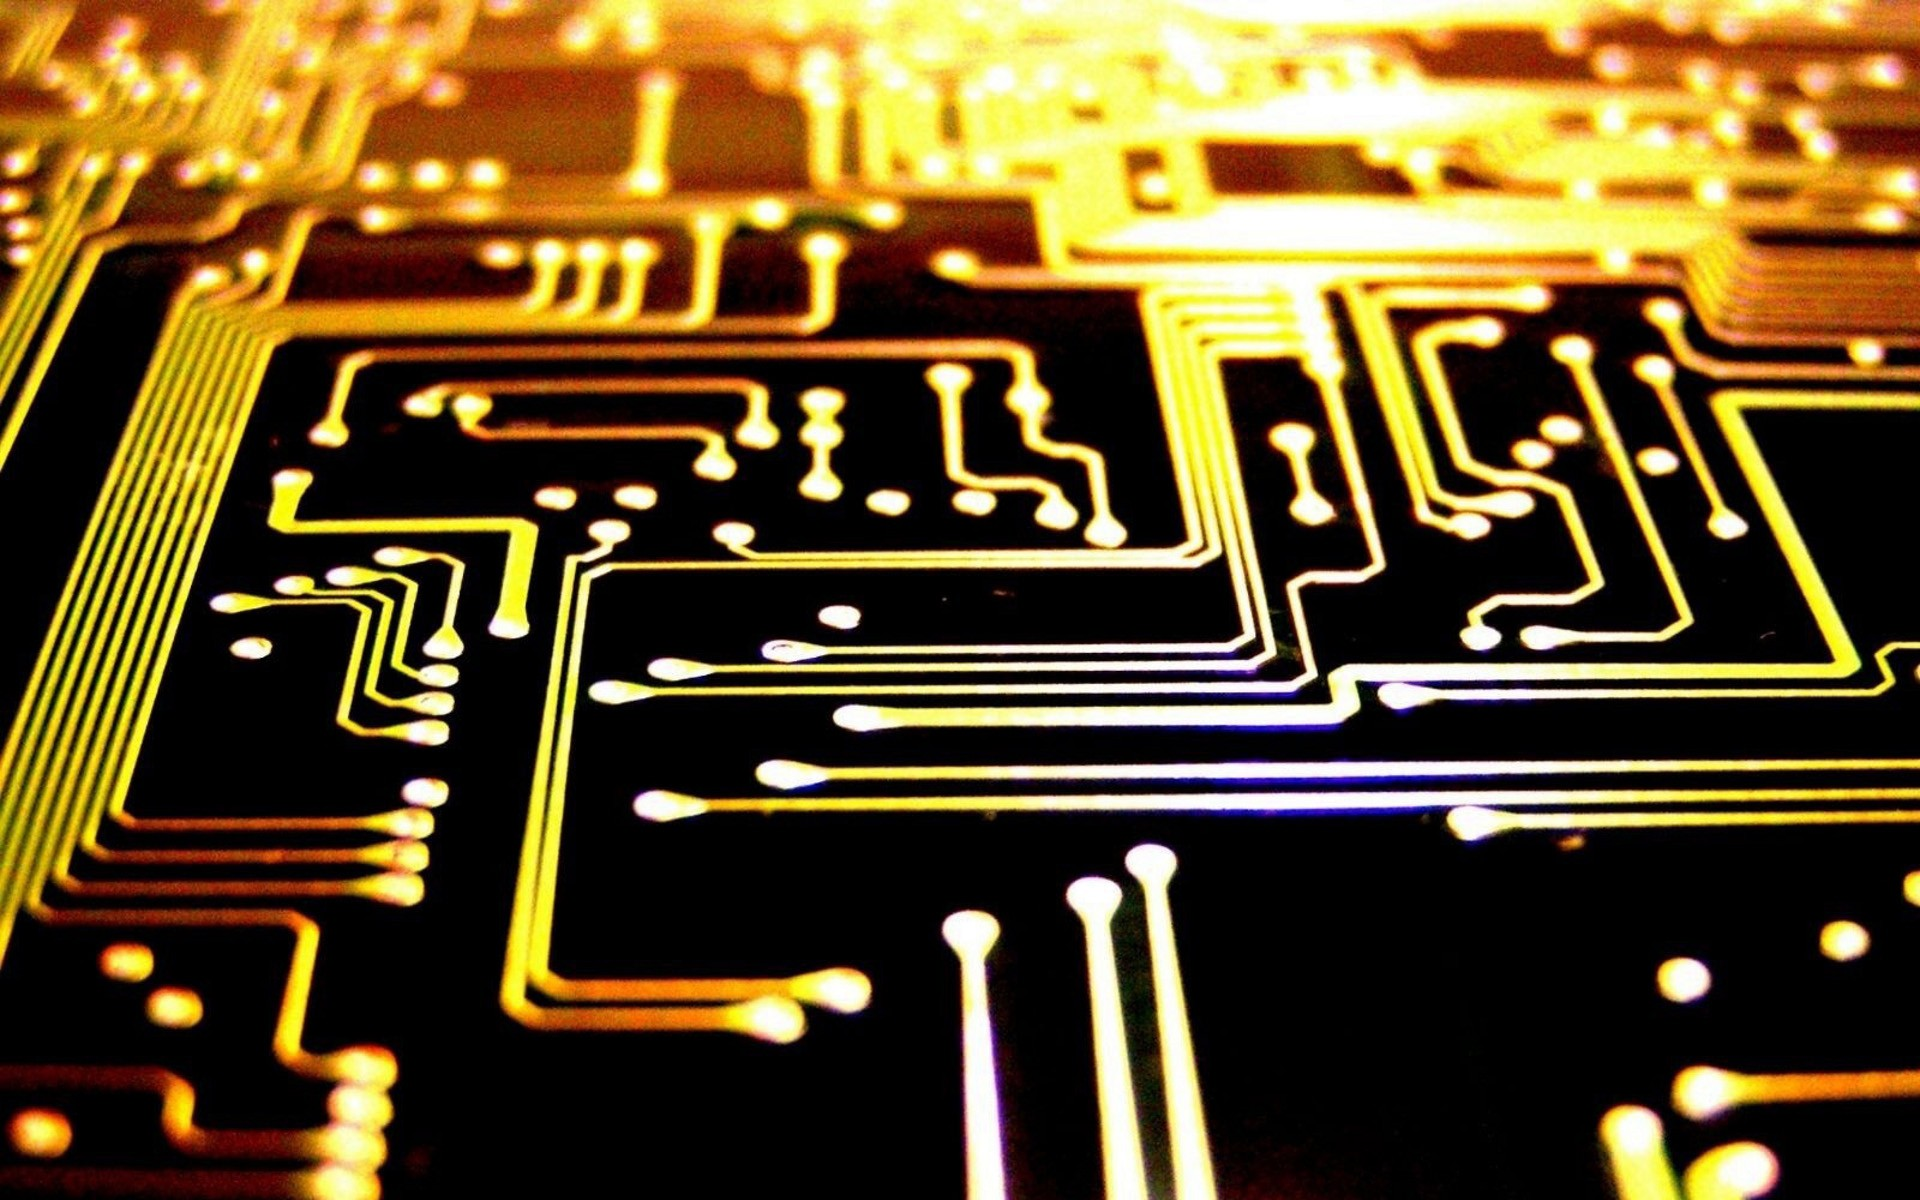 Circuits Wallpaper Wallpapersafari Electronic Integrated Circuit Chip As An Abstract Background Pattern Pcb Wa 1920x1200